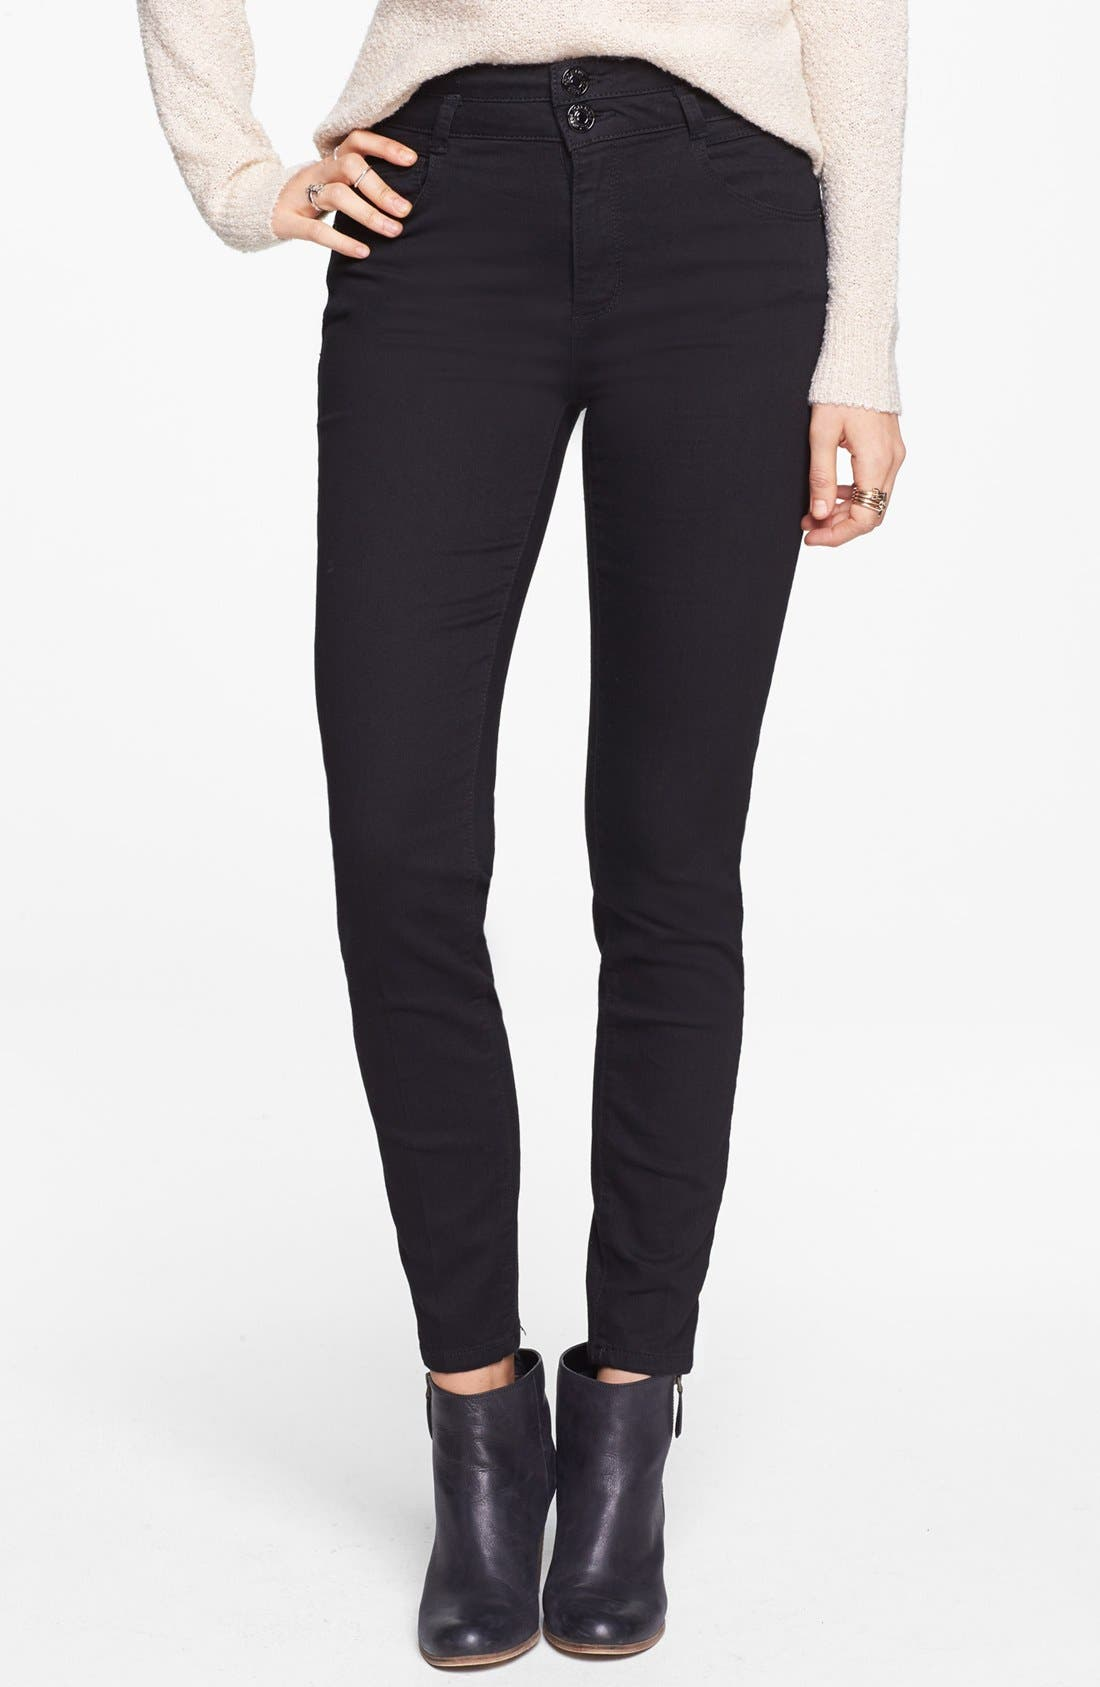 Main Image - Jolt High Waist Skinny Jeans (Black) (Juniors)